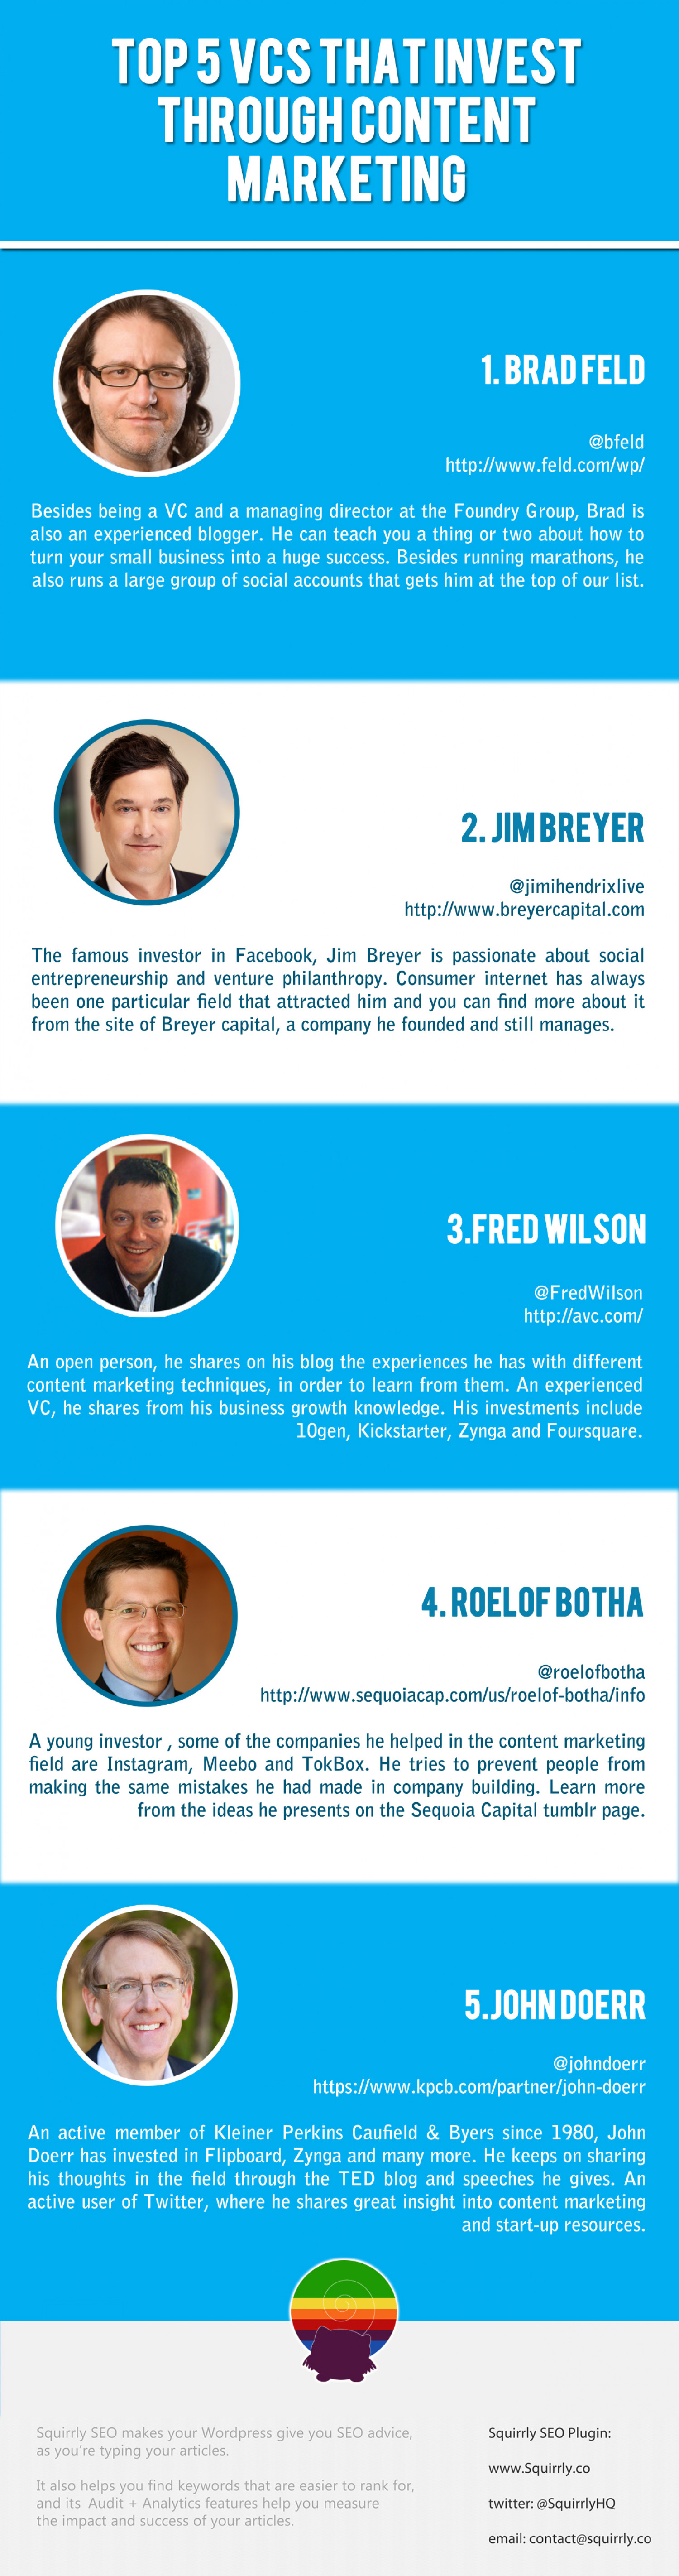 Top 5 VC that invest through content marketing  Infographic